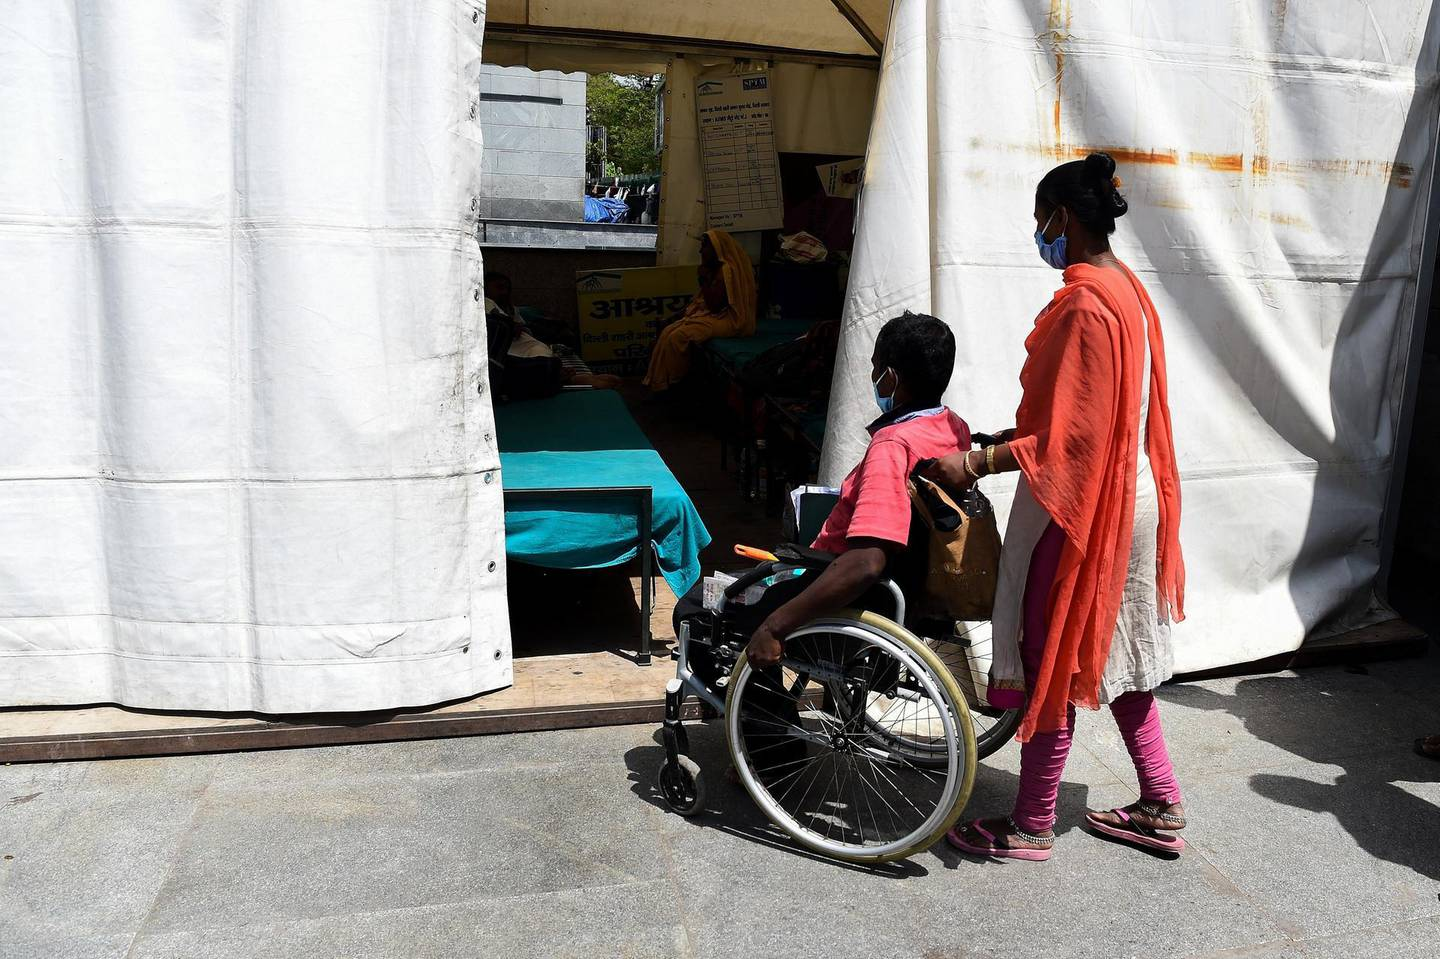 This photograph taken on April 7, 2020 shows wife of 38-year-old patient Upender Safi (C) pushing his wheelchair at a night shelter setup by Delhi government outside the All India Institute of Medical Sciences (AIIMS) during a government-imposed nationwide lockdown as a preventive measure against the COVID-19 coronavirus, in New Delhi. - The capacity of medical facilites around the world has been stretched by the surge of COVID-19 patients as outbreaks worsen in many countries. It can cause people with other life-threatening diseases to miss out on vital care -- especially in places like India, where healthcare systems are shakier. Dozens of people with serious medical conditions are camped outside India's national medical institute in tents set up by the Delhi government. (Photo by Prakash SINGH / AFP) / To go with FOCUS 'HEALTH-VIRUS-INDIA' by AISHWARYA KUMAR.